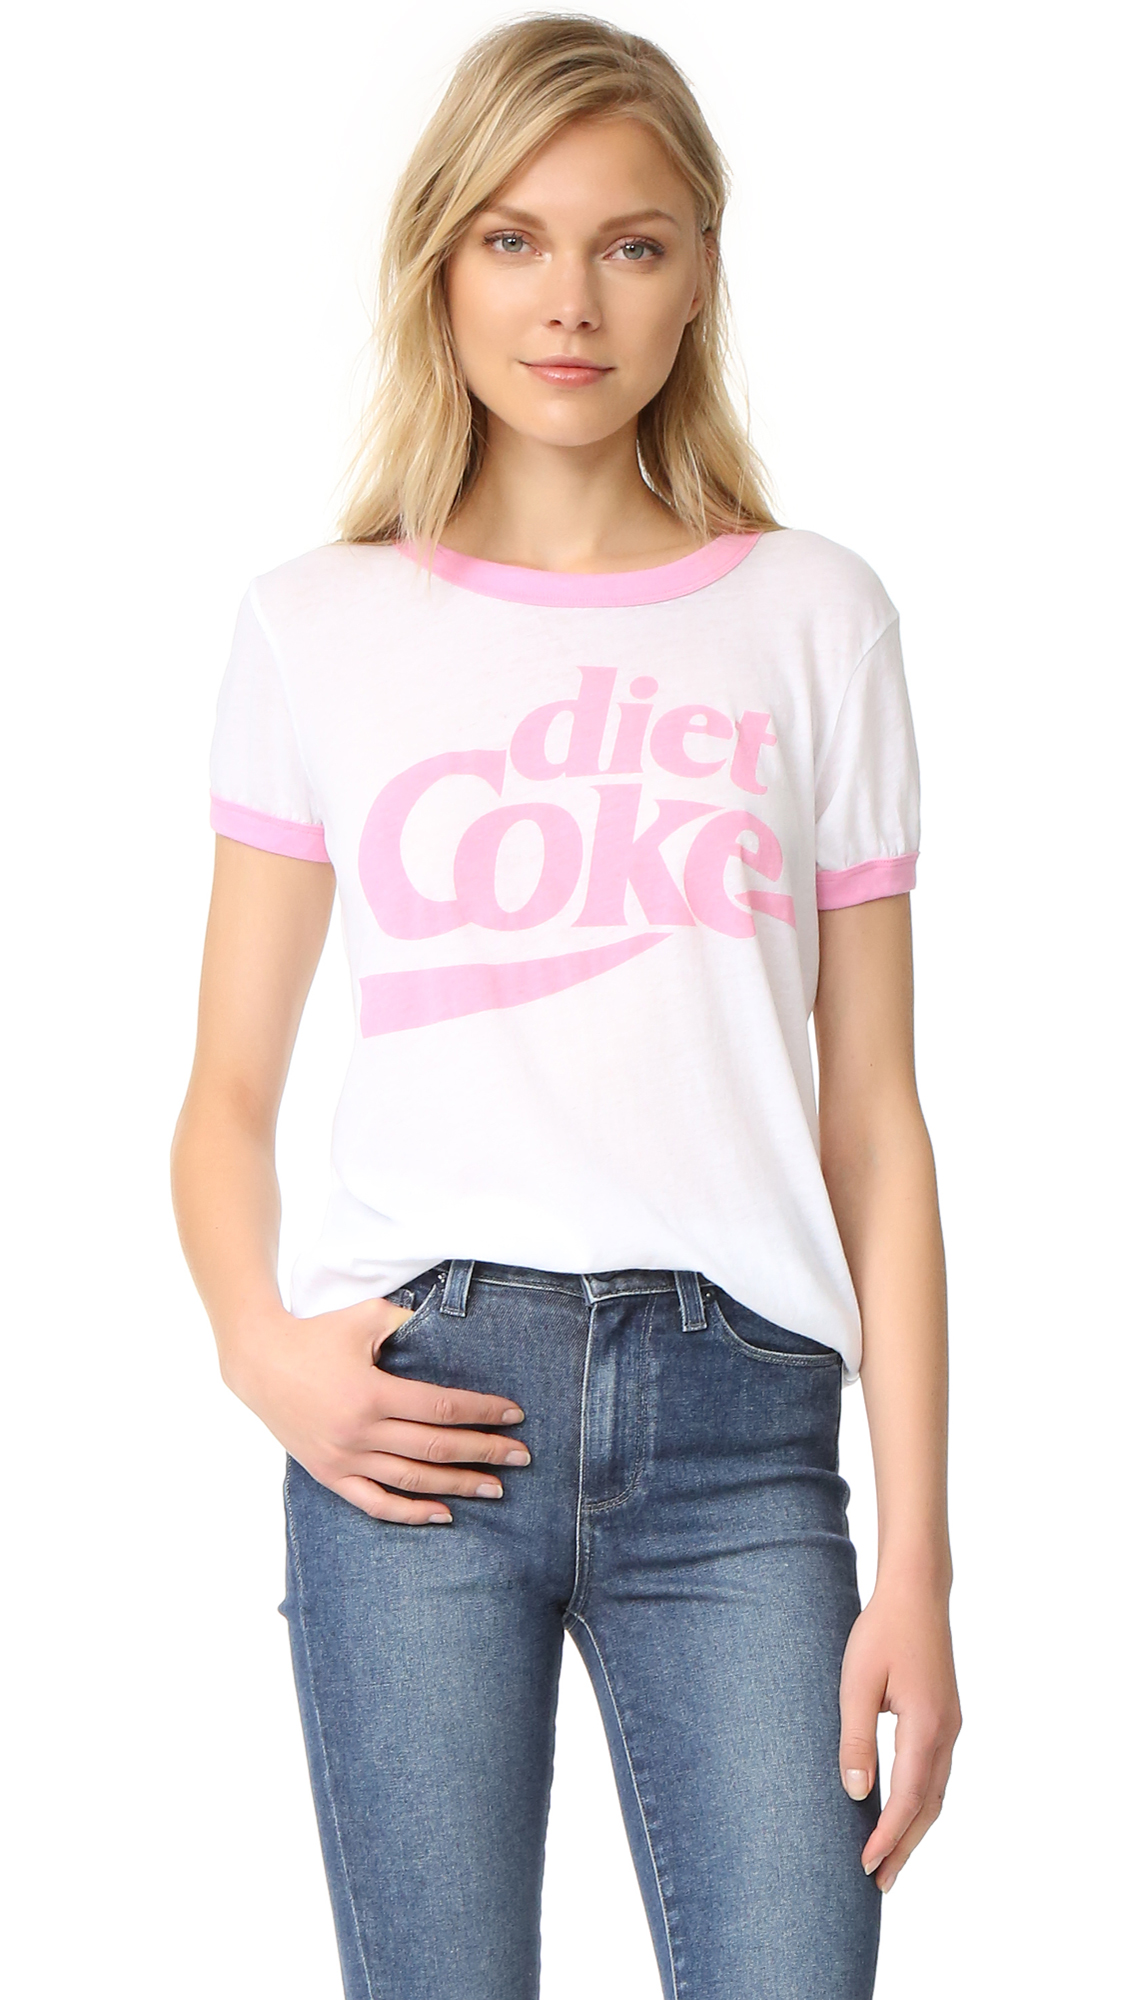 Wildfox Diet Coke Tee In Clean White/Dream House